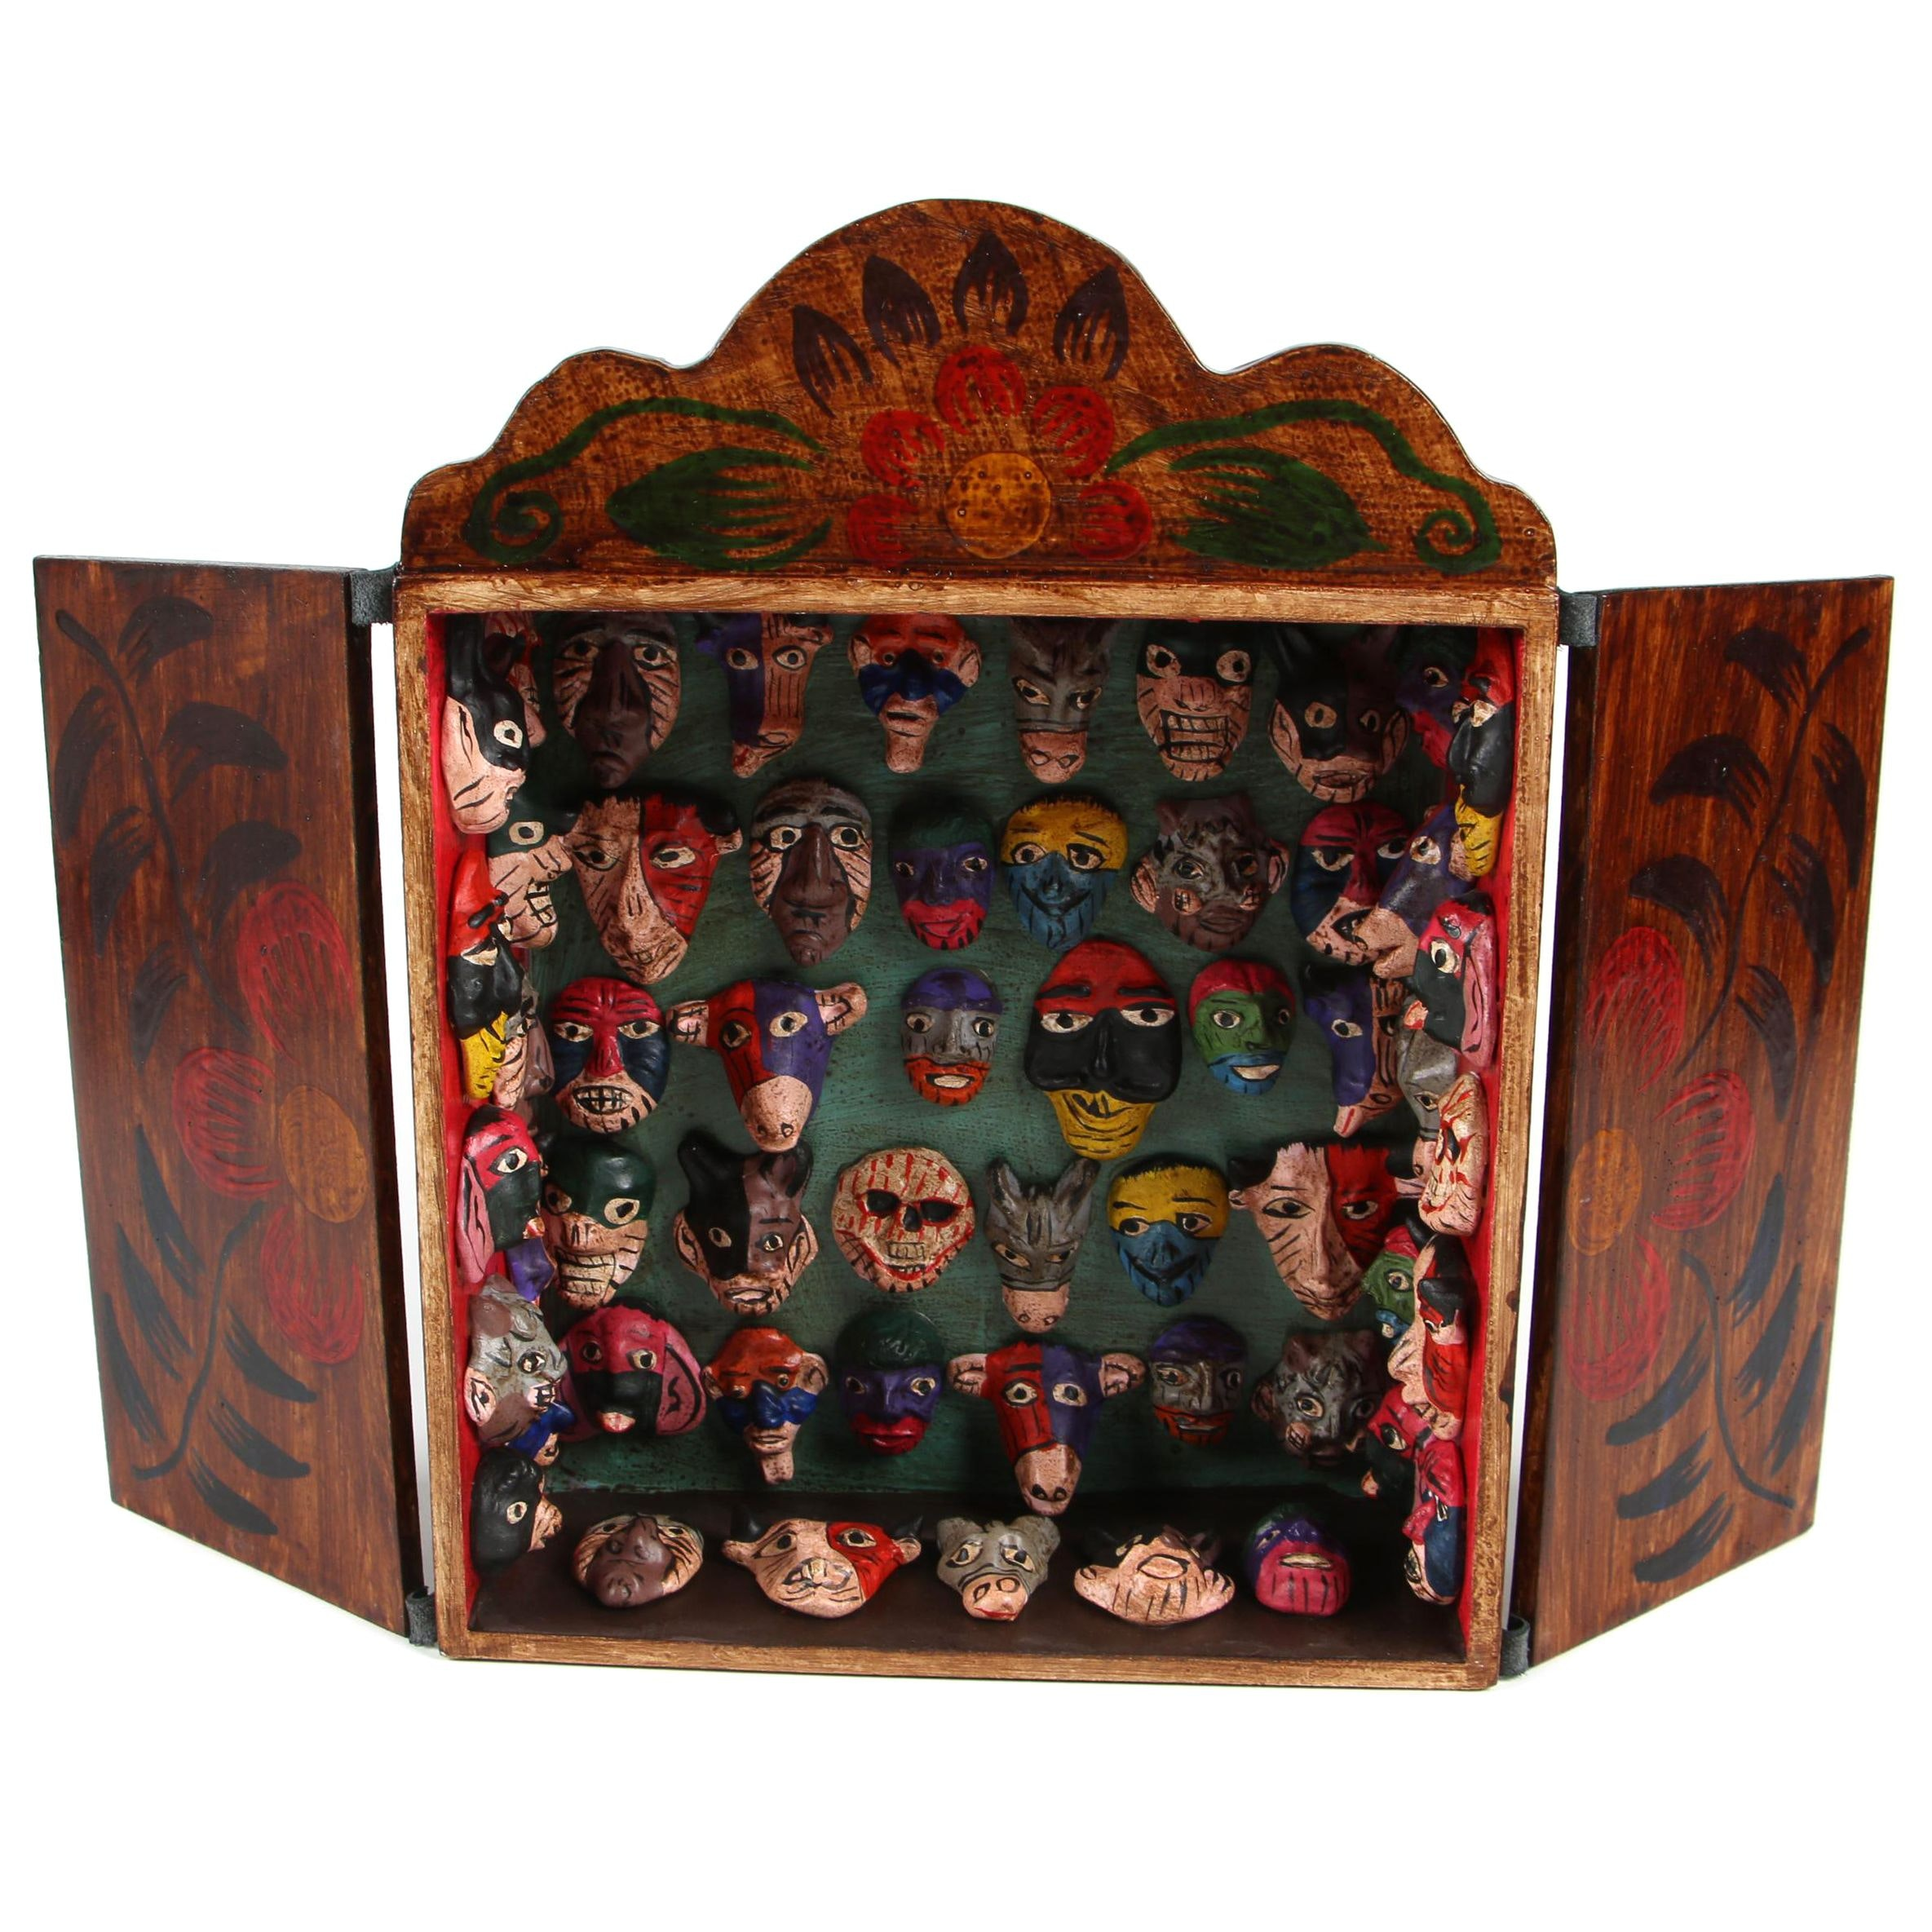 "Peruvian Handmade Wood and Ceramic Folk Art Retablo ""Mask Collection"""